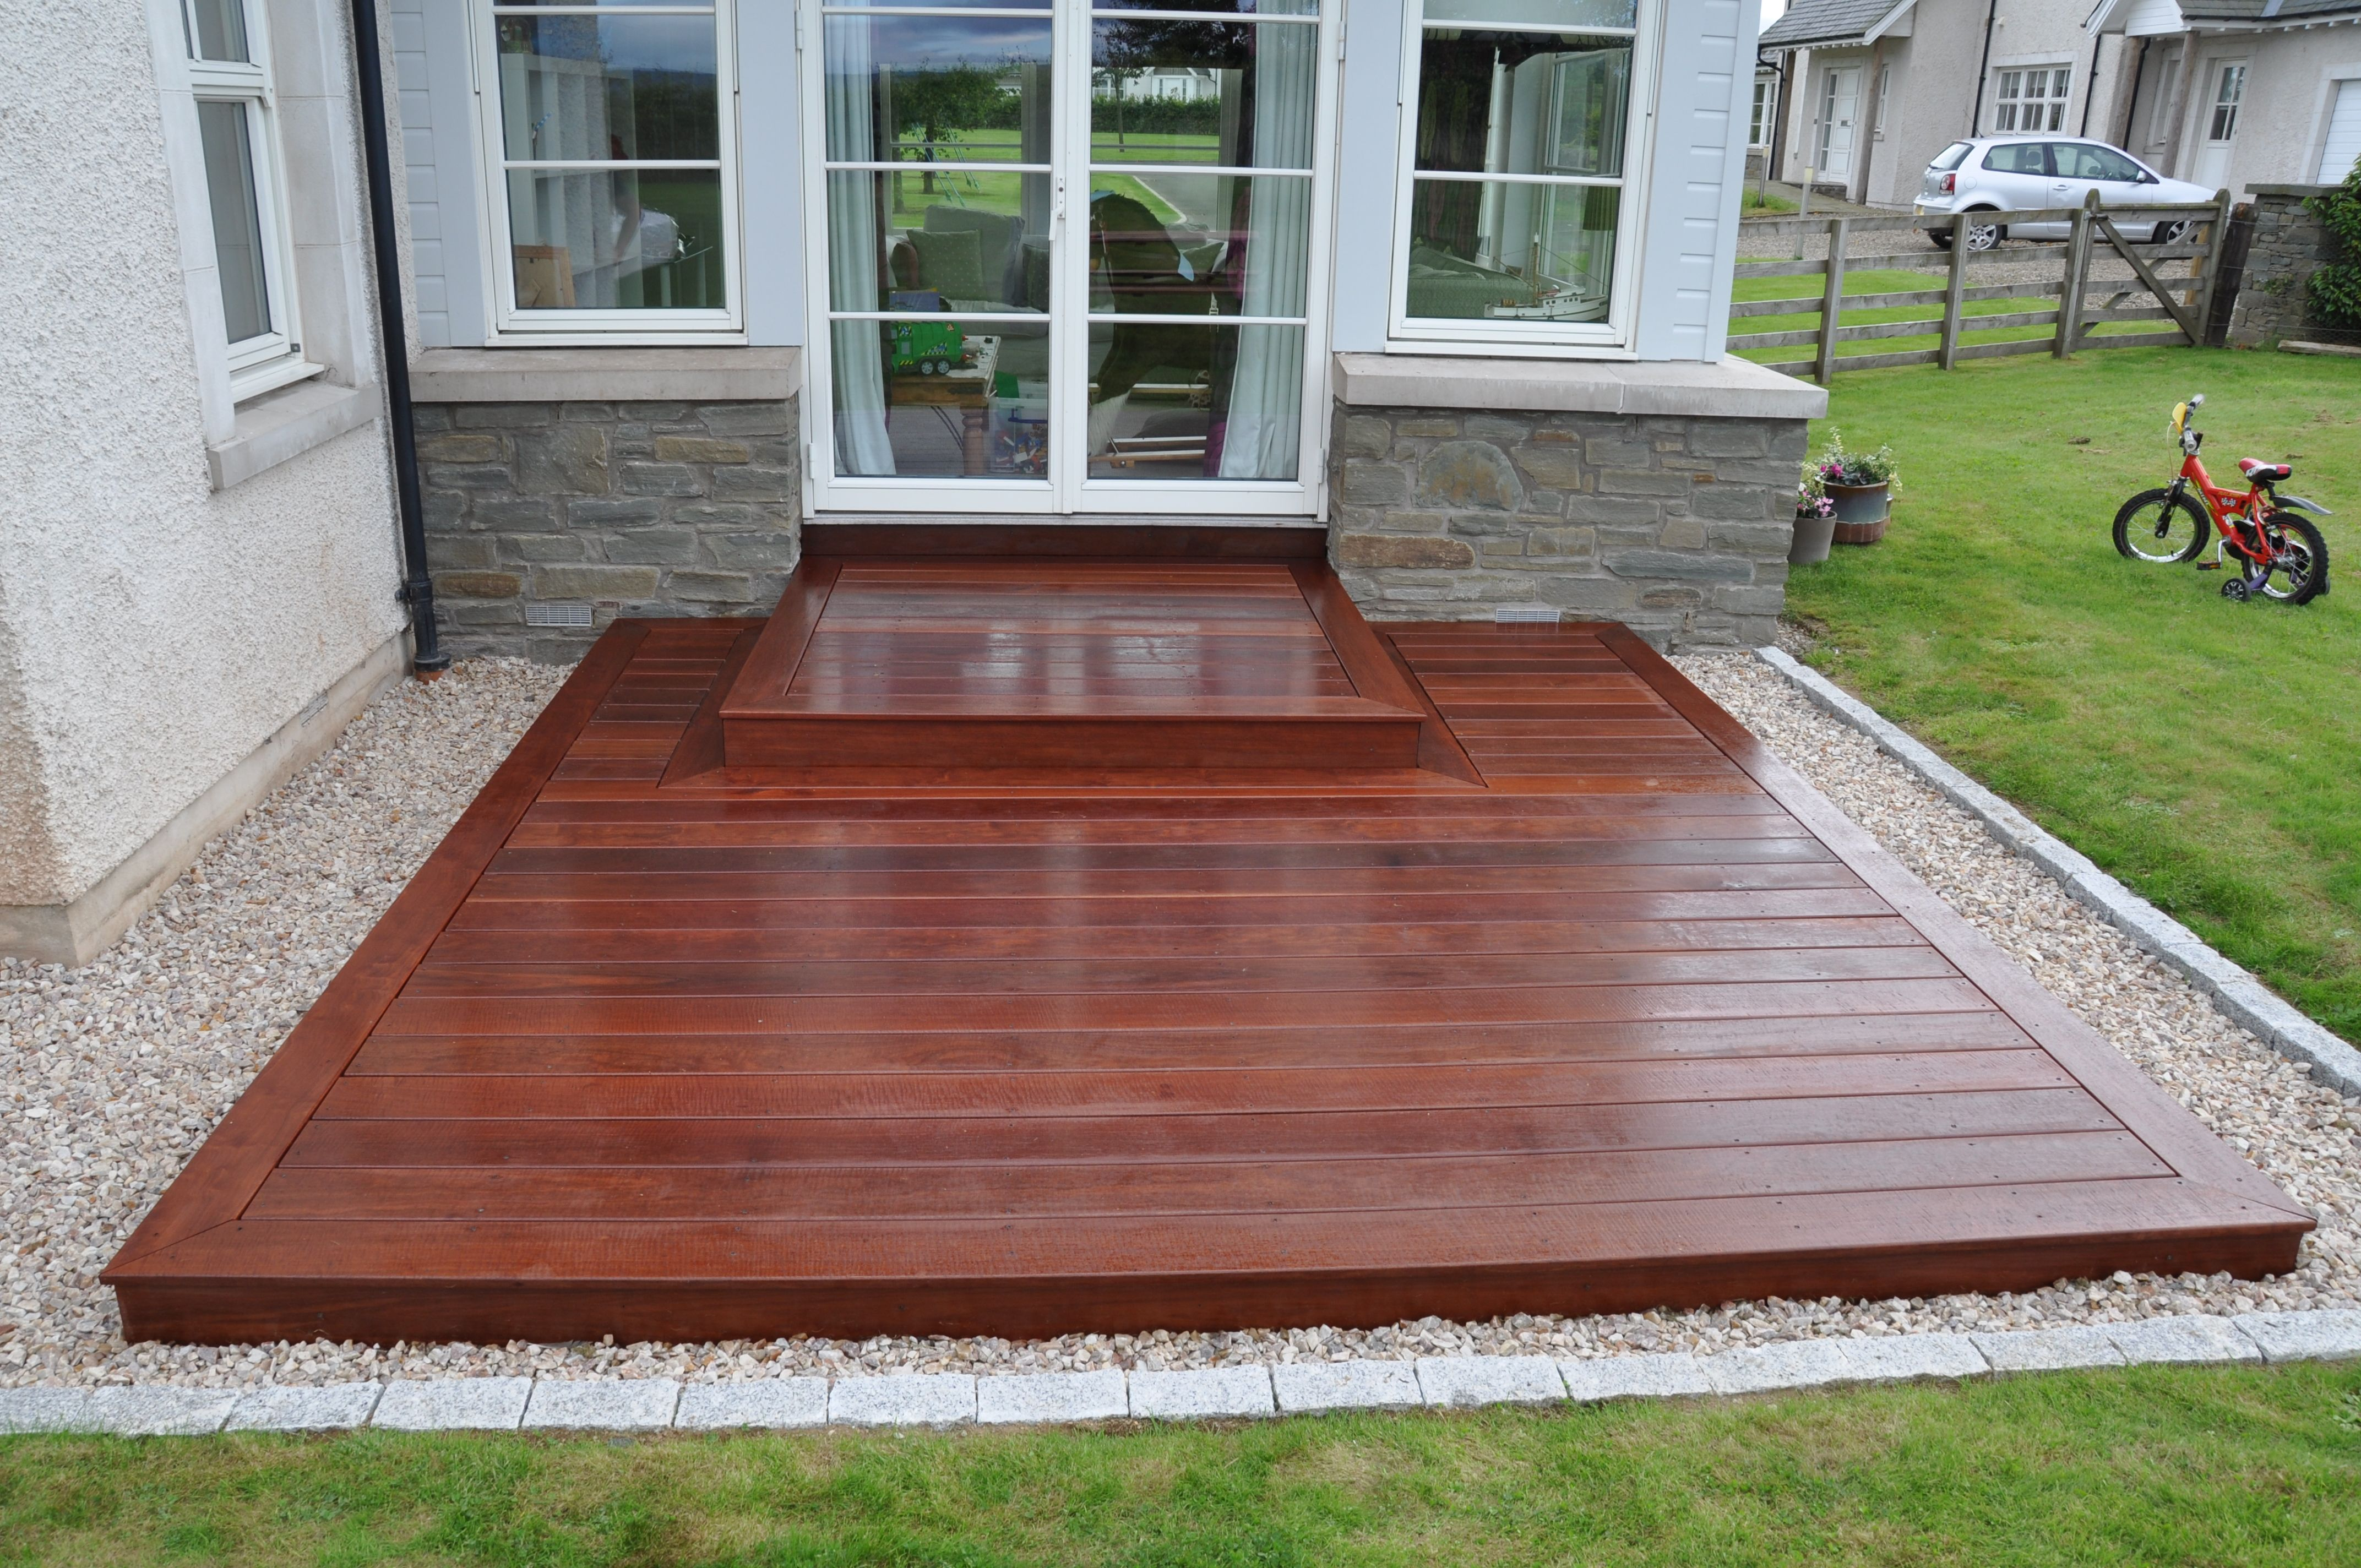 A Simple Square Deck Provides Practical Entrance And An